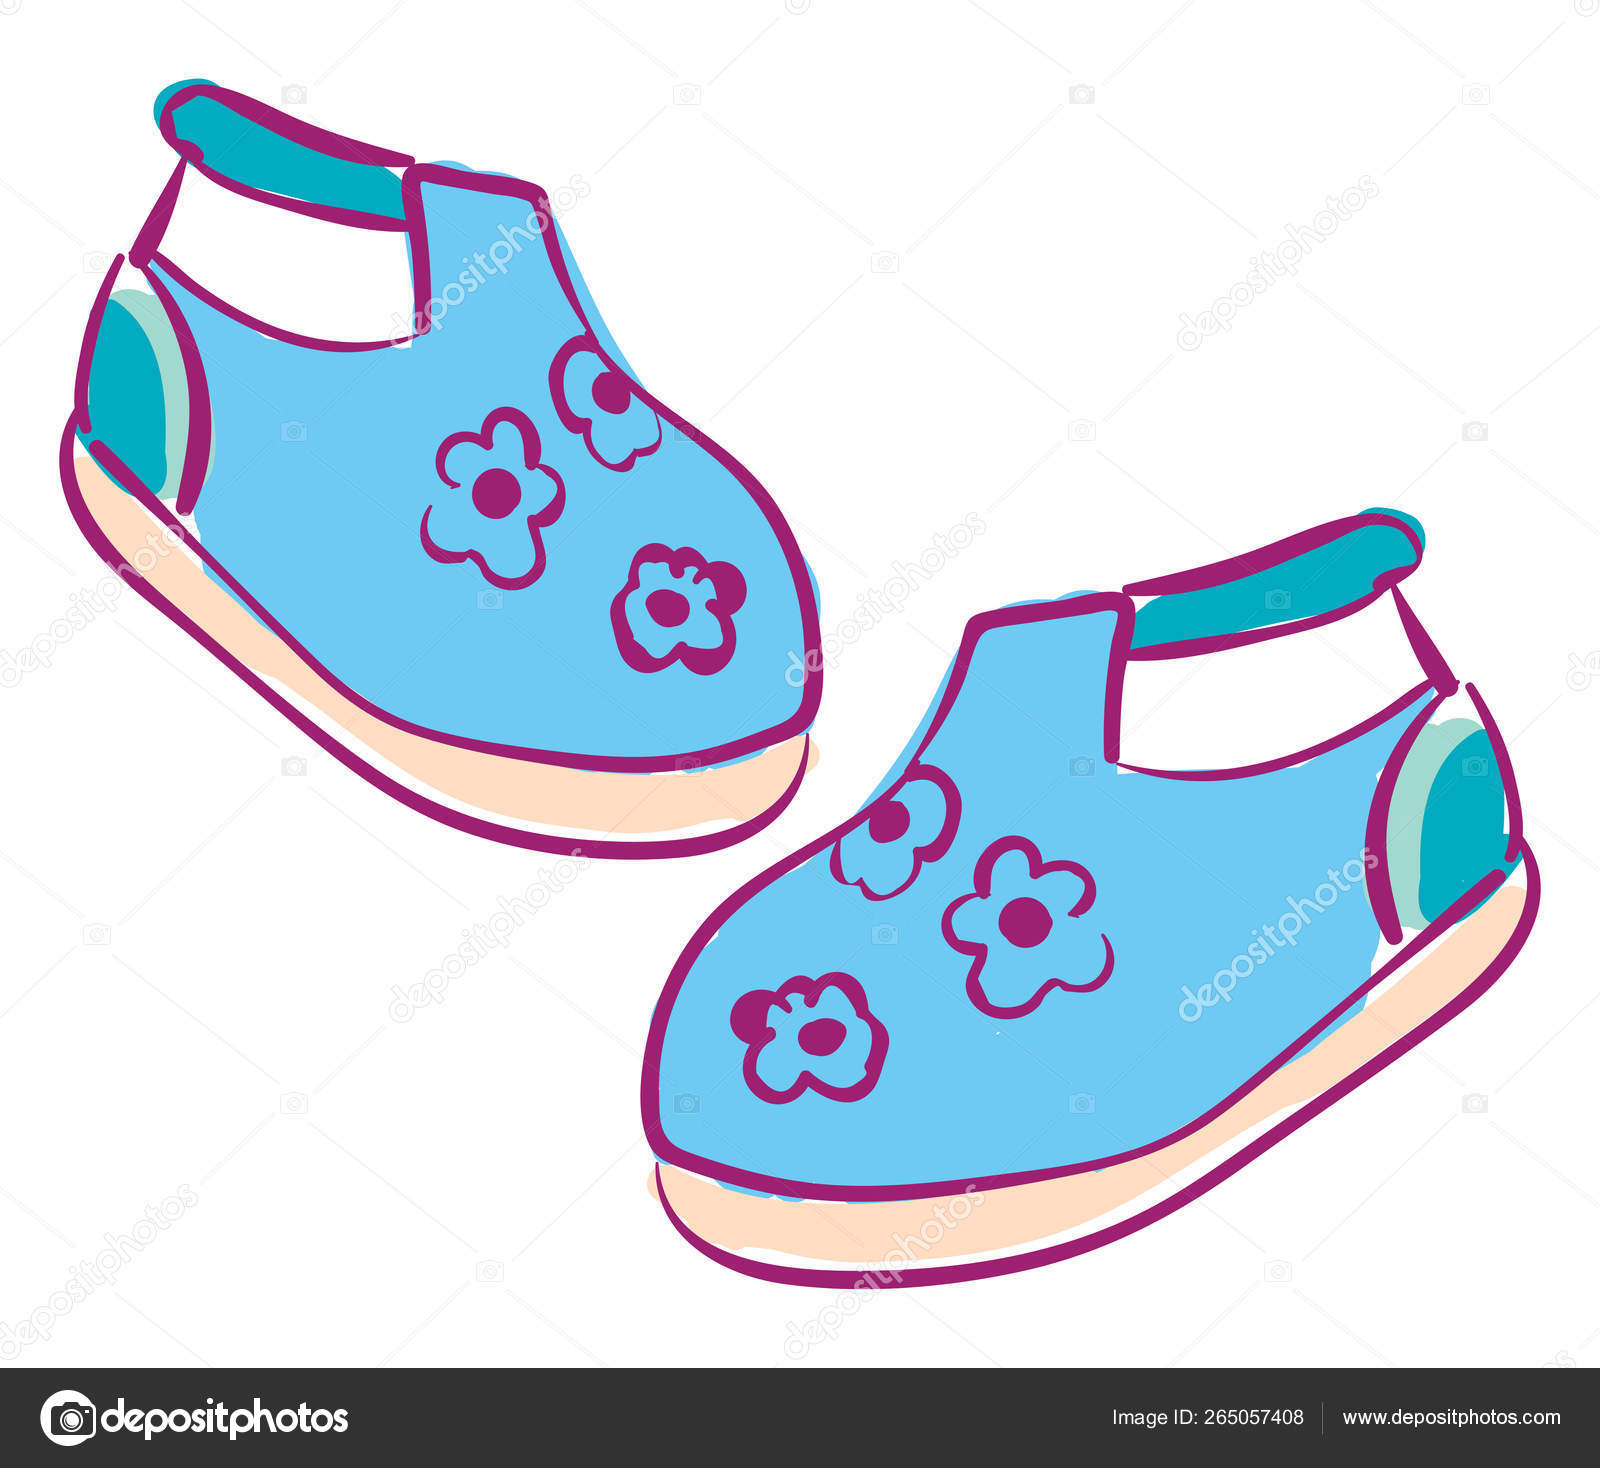 Clipart Baby Shoes Clipart Of A Pair Of Baby S Shoes Vector Or Color Illustration Stock Vector C Morphart 265057408